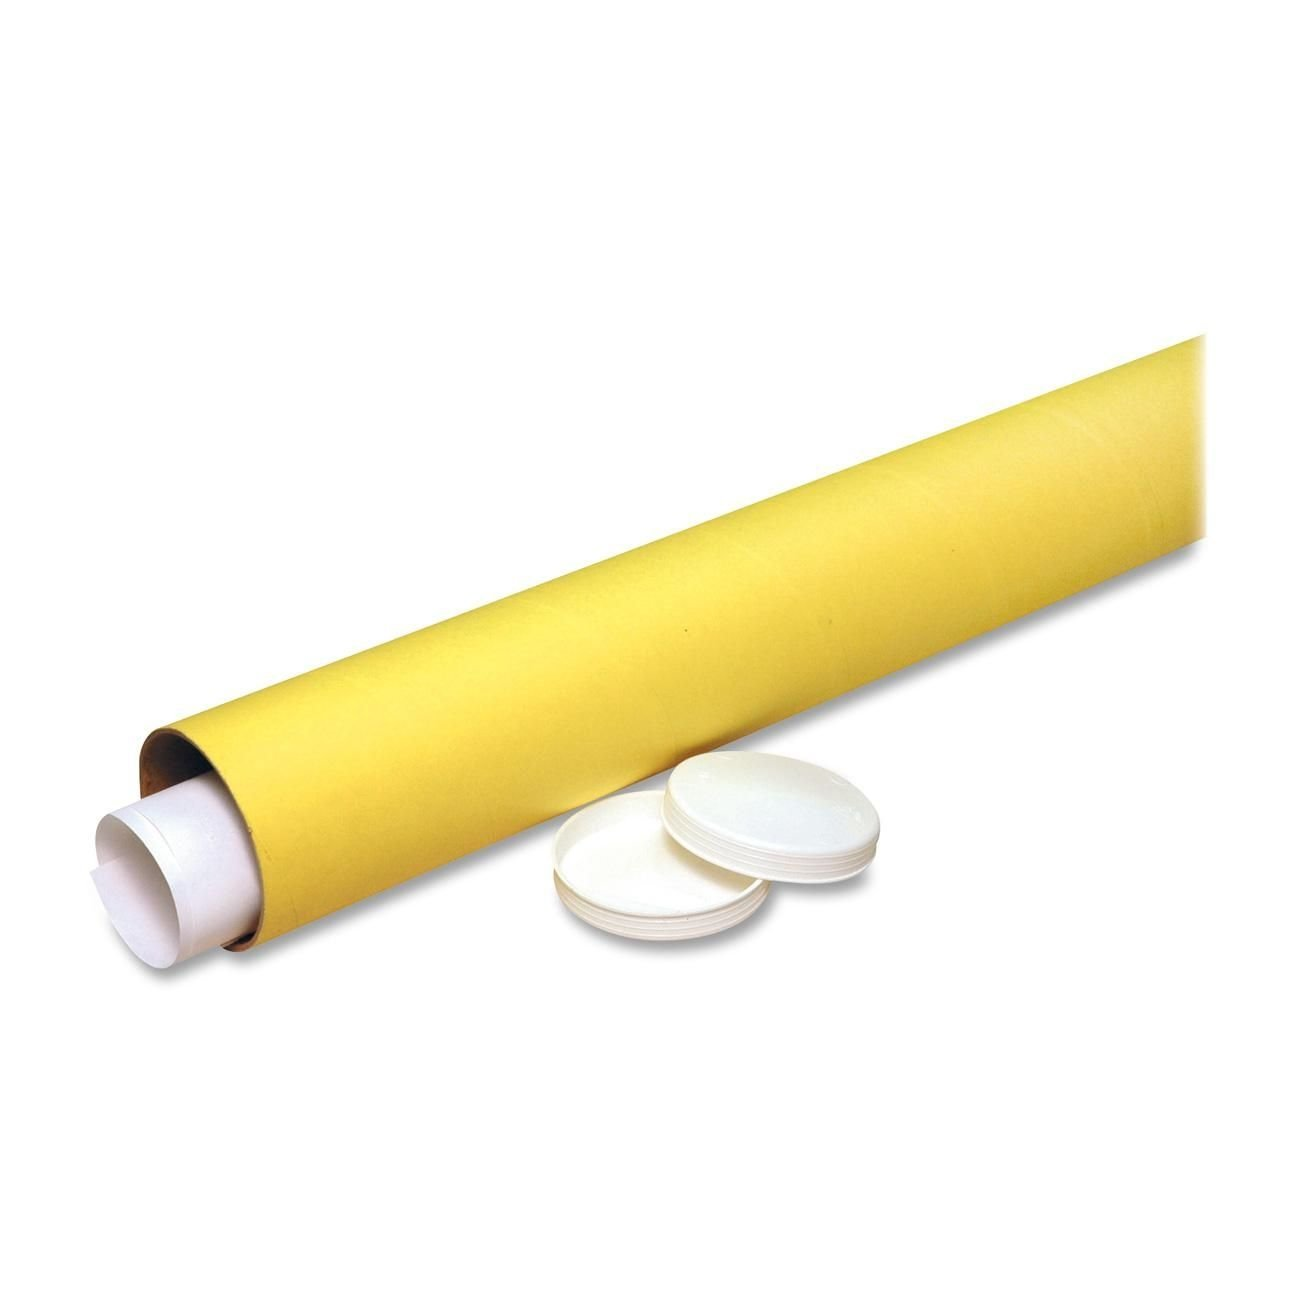 Nature Saver Economy Mailing Tubes -31 -Removable End Caps -Fiberboard -25/Carton -Yellow Kraft S.P. Richards CA NAT01511